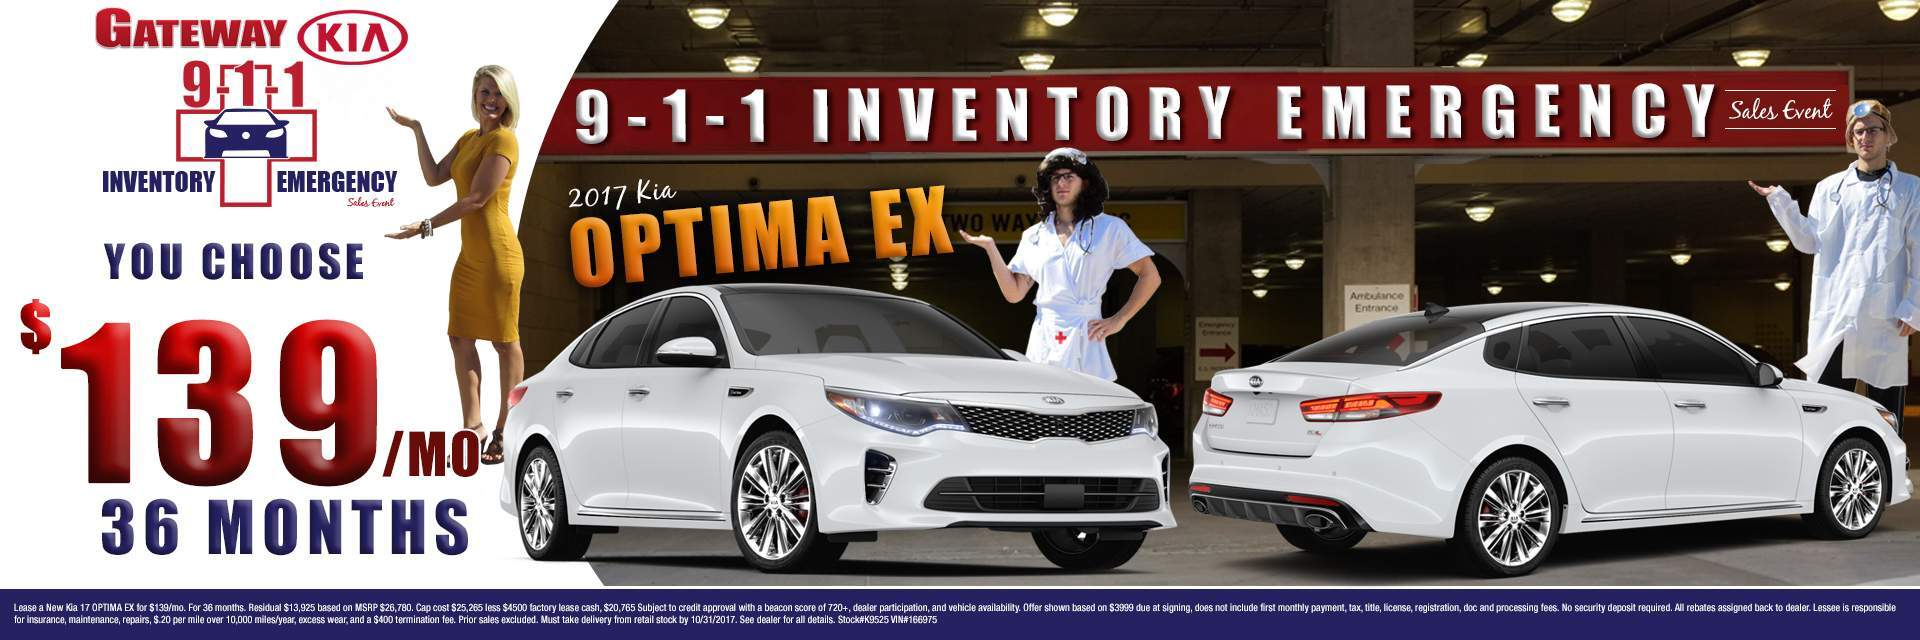 Kia Optima EX $139/mo